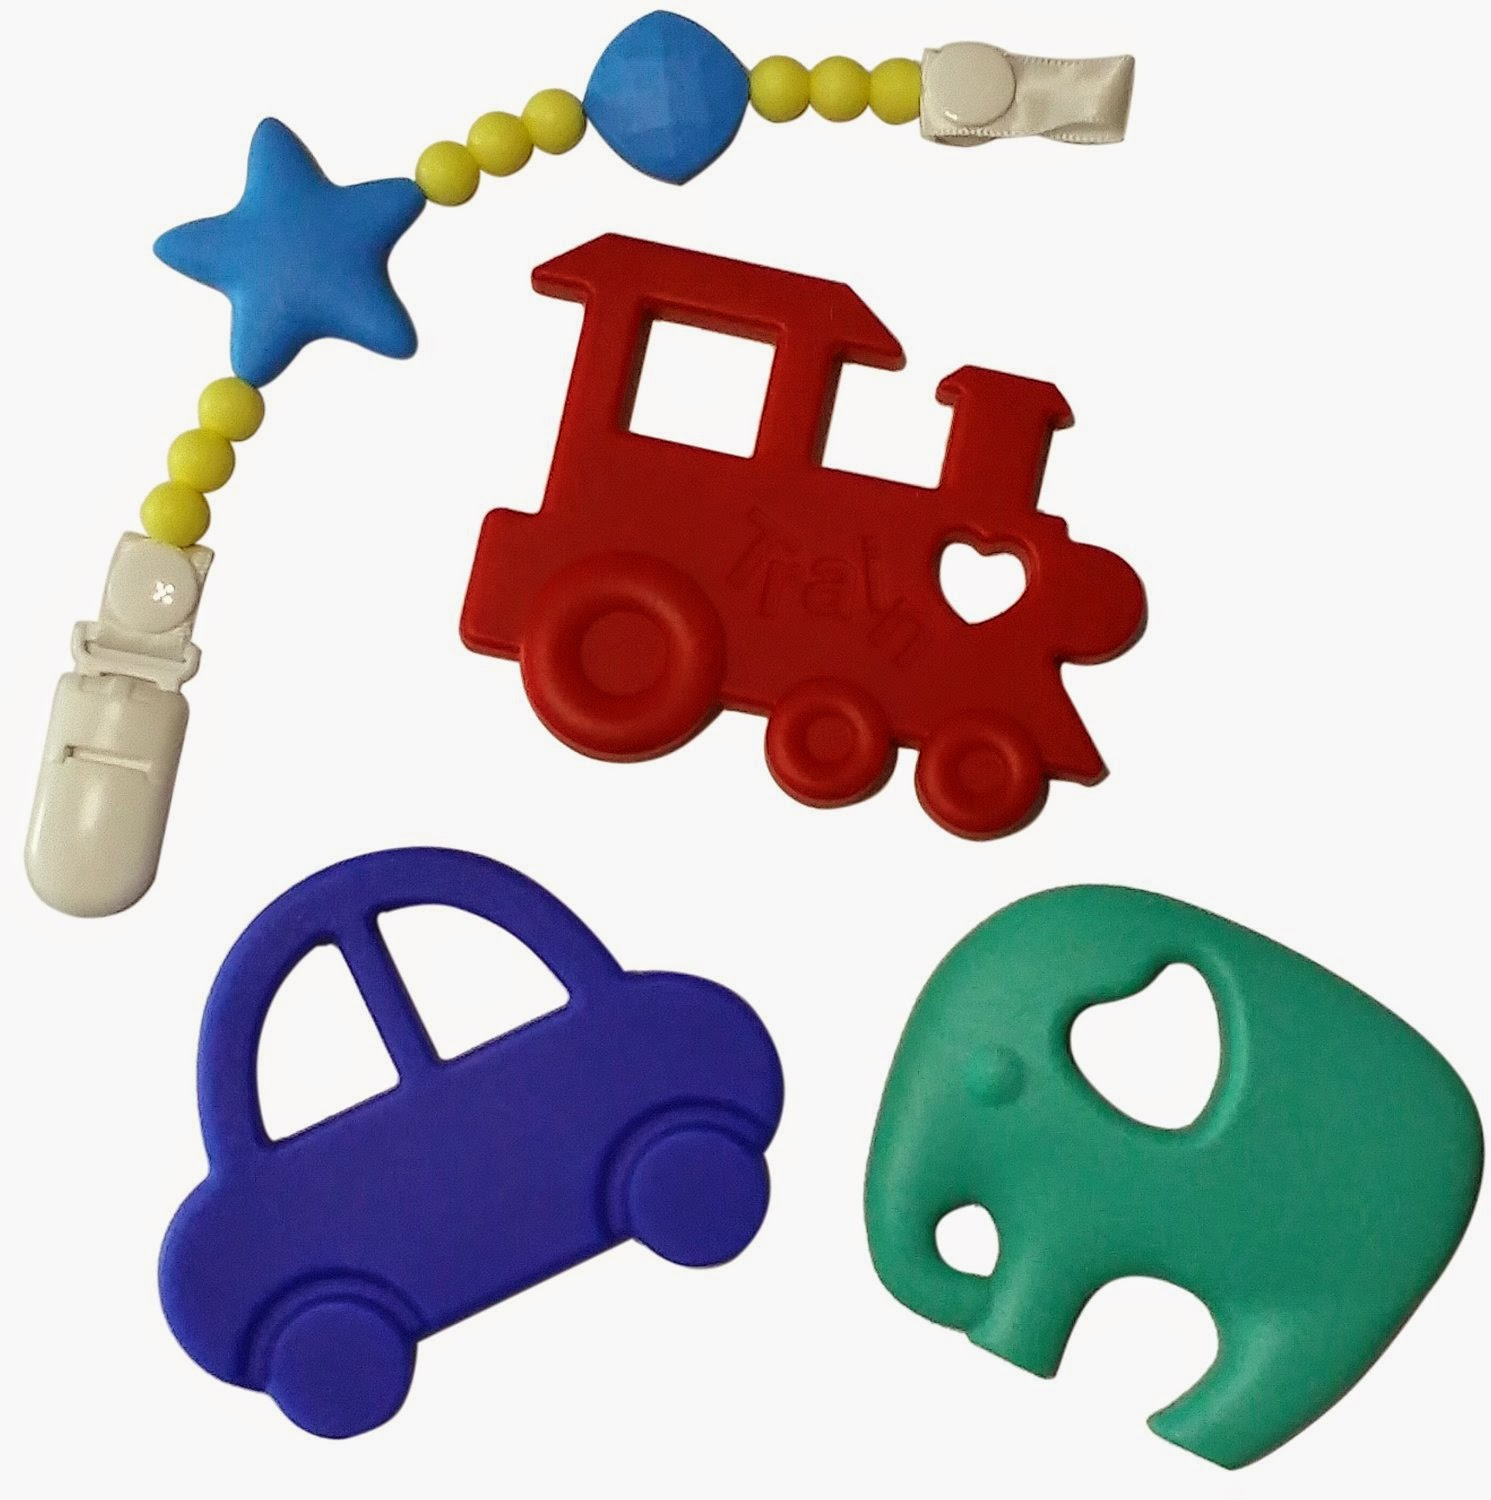 http://www.amazon.com/Teething-Toys-Pacifier-Teether-Holder/dp/B00T2DYFU2/ref=sr_1_1?ie=UTF8&qid=1426903426&sr=8-1&tag=chridayever-20&keywords=teething+toys